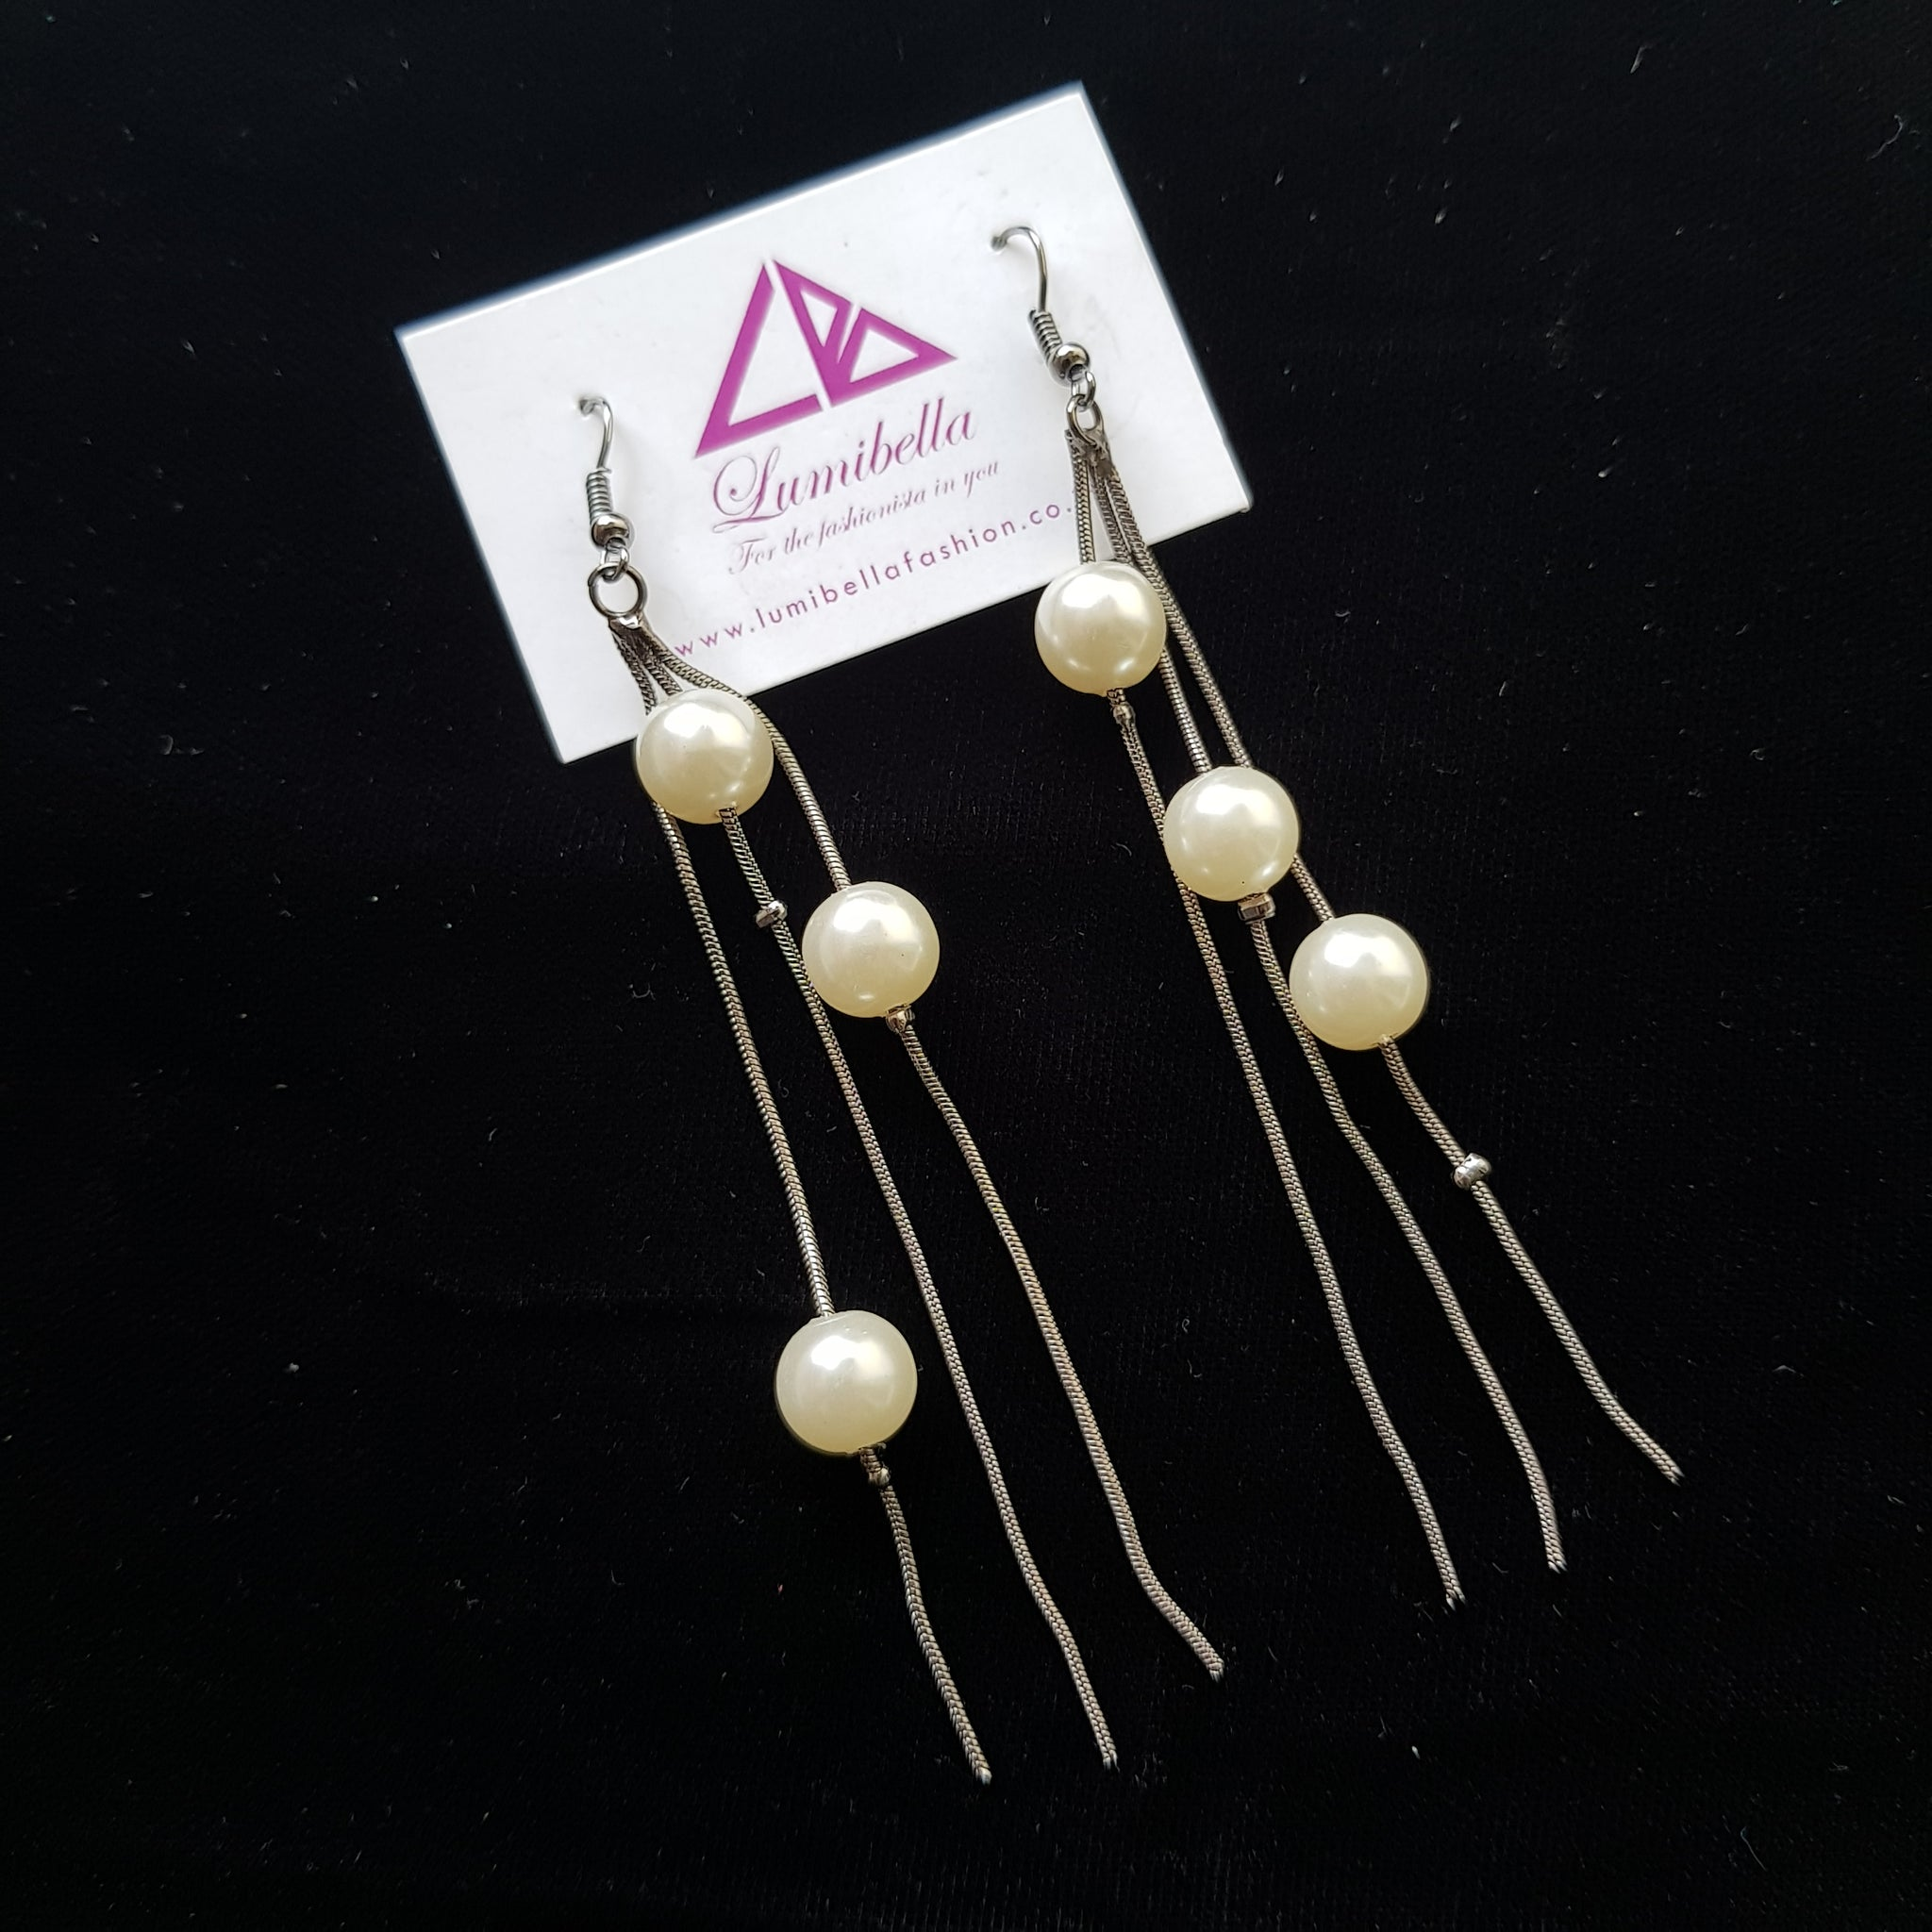 Pearl styled fashion earrings